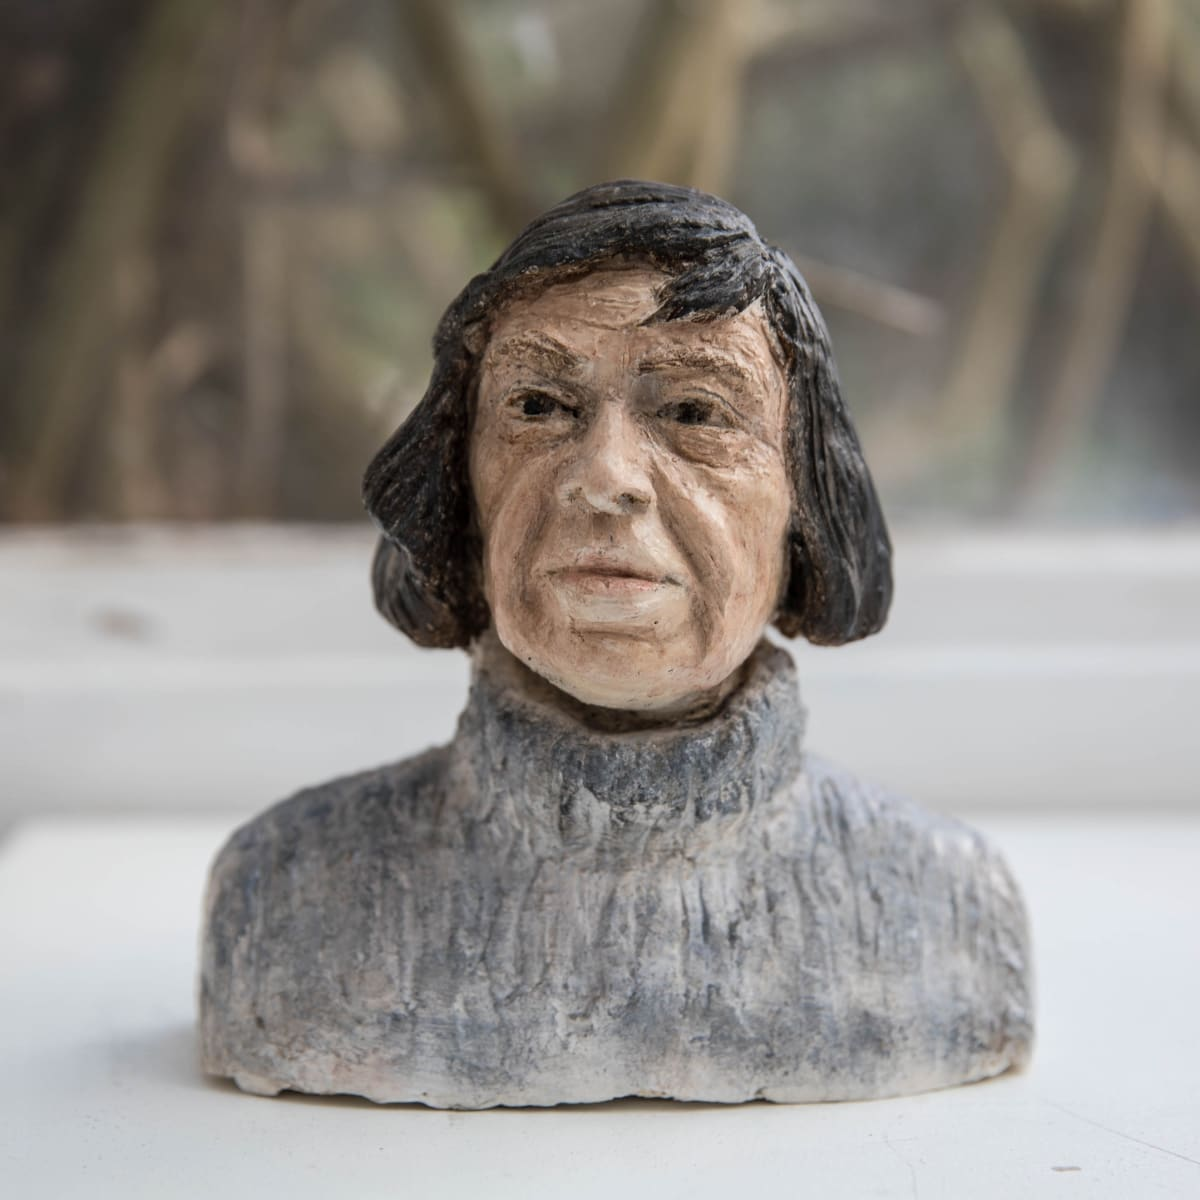 Nicole Farhi Patricia Highsmith ciment fondu and acrylic; hand-painted bronze casts available to purchase 17 x 17 x 6 cm edition of 7 + 3 APs